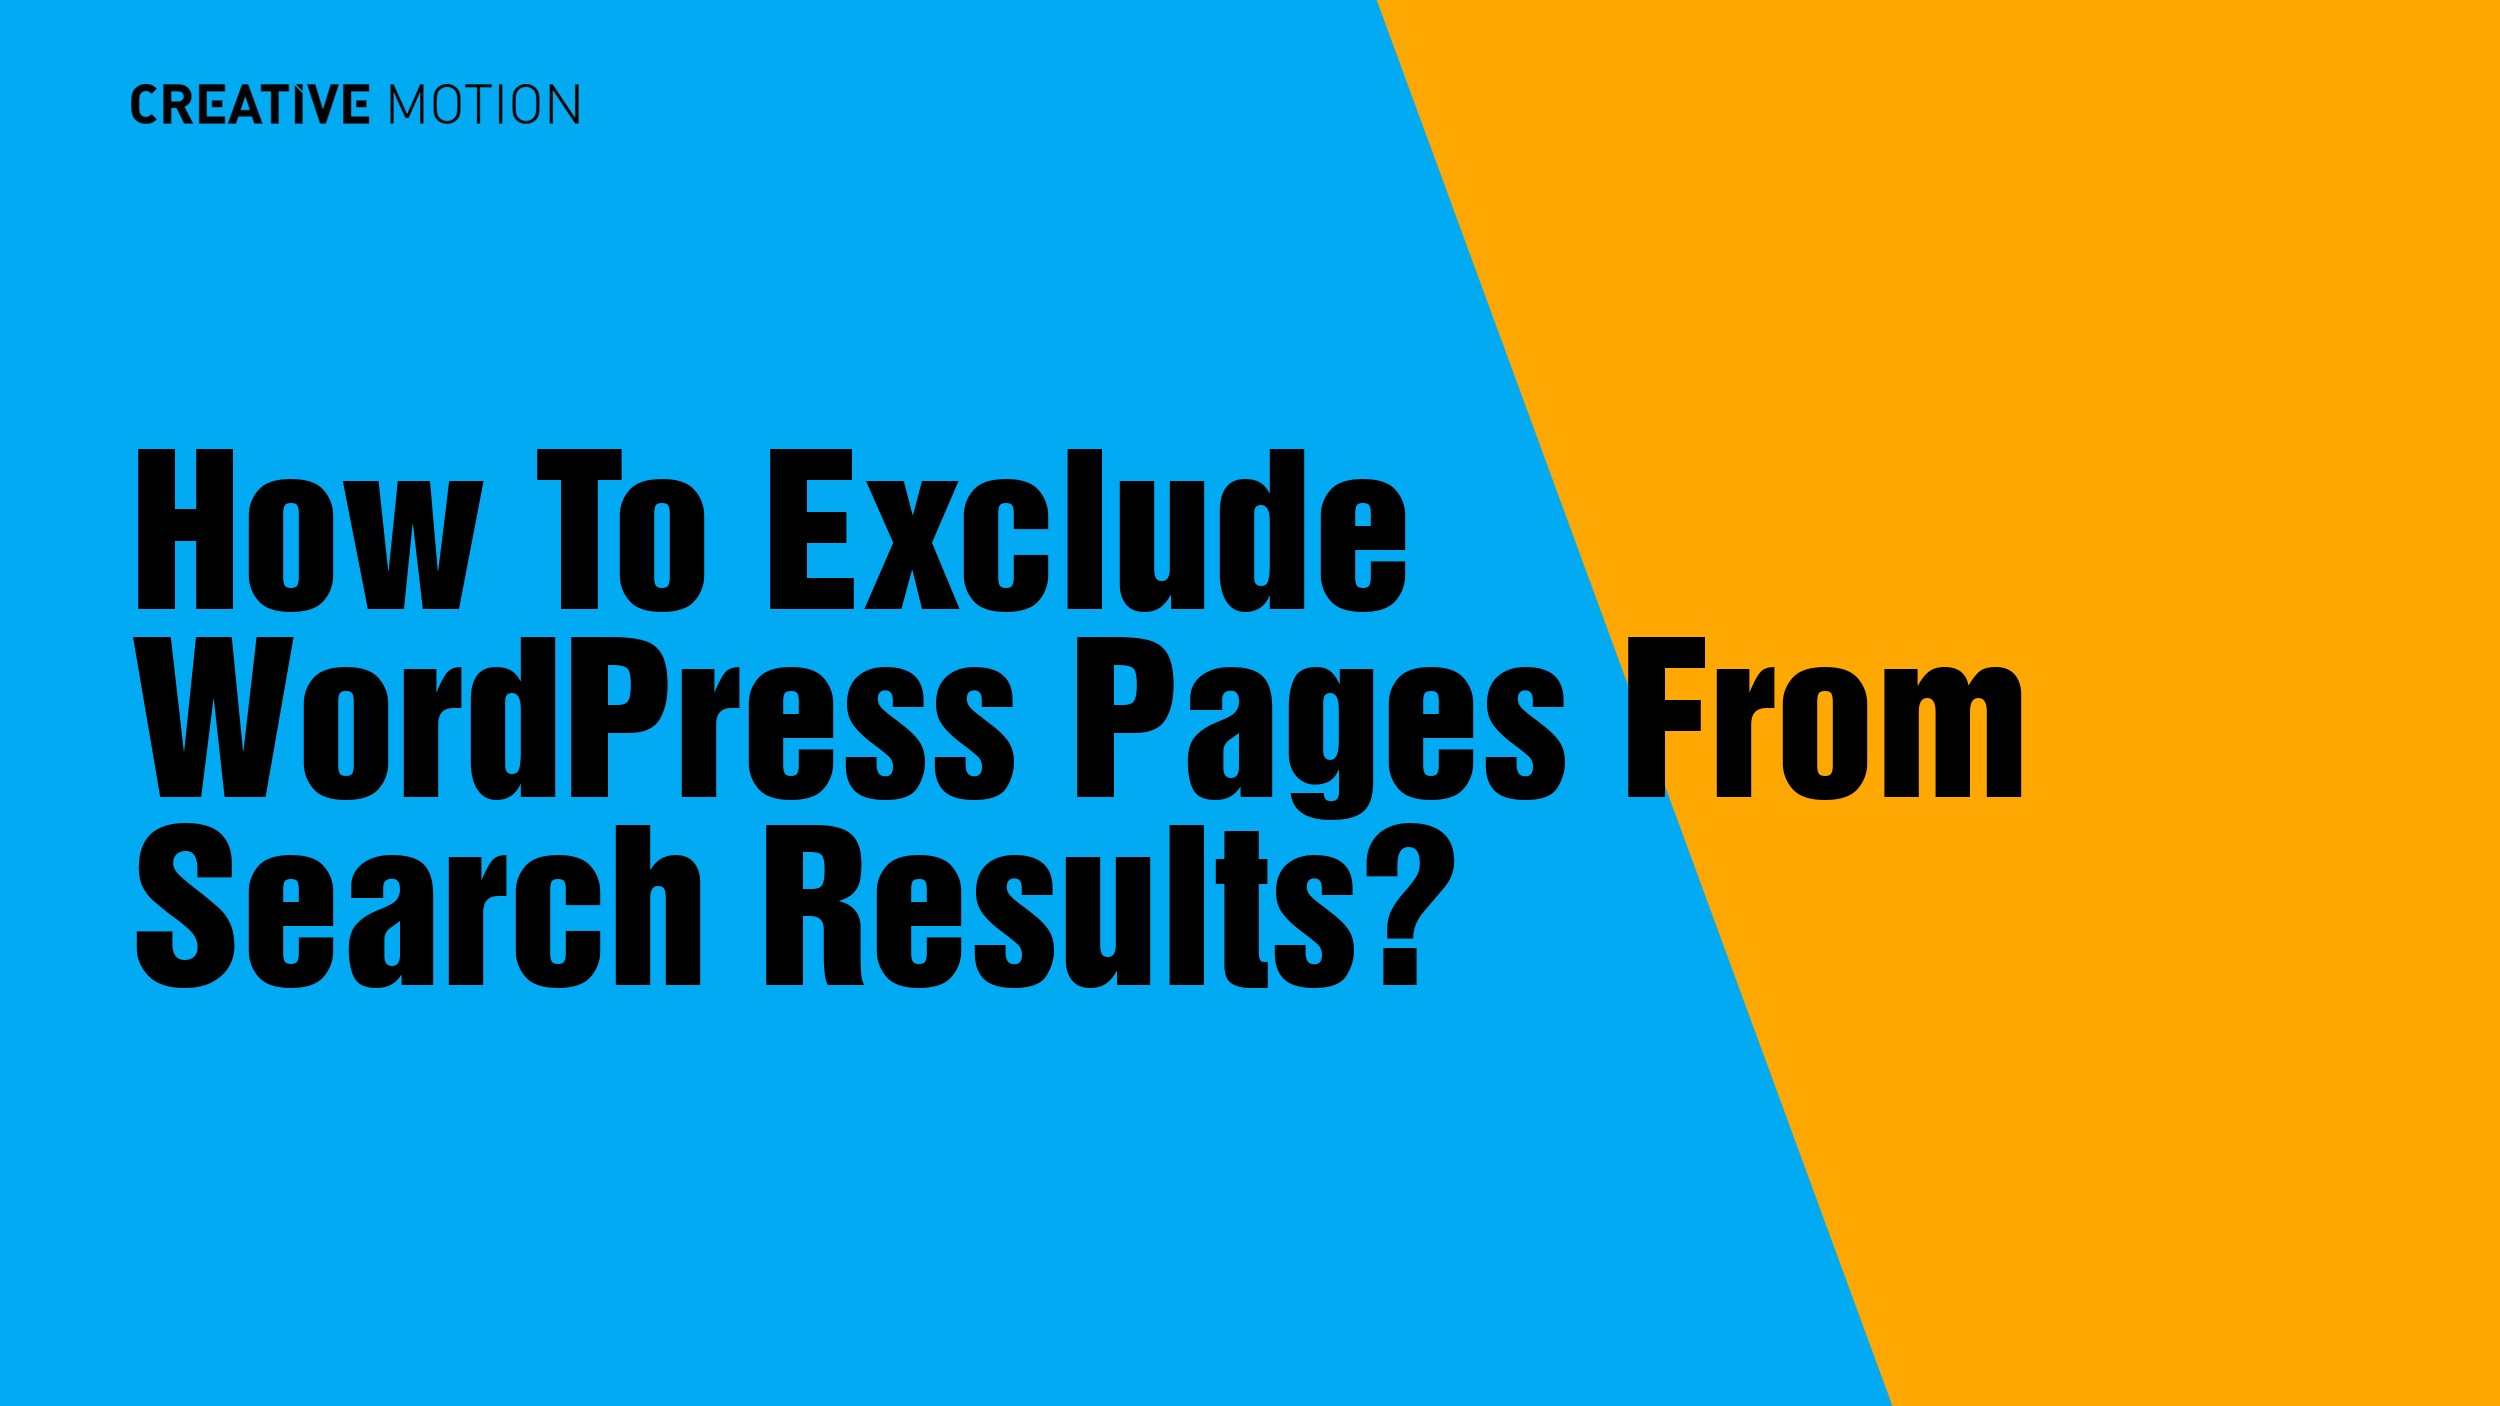 How To Exclude WordPress Pages From Search Results?